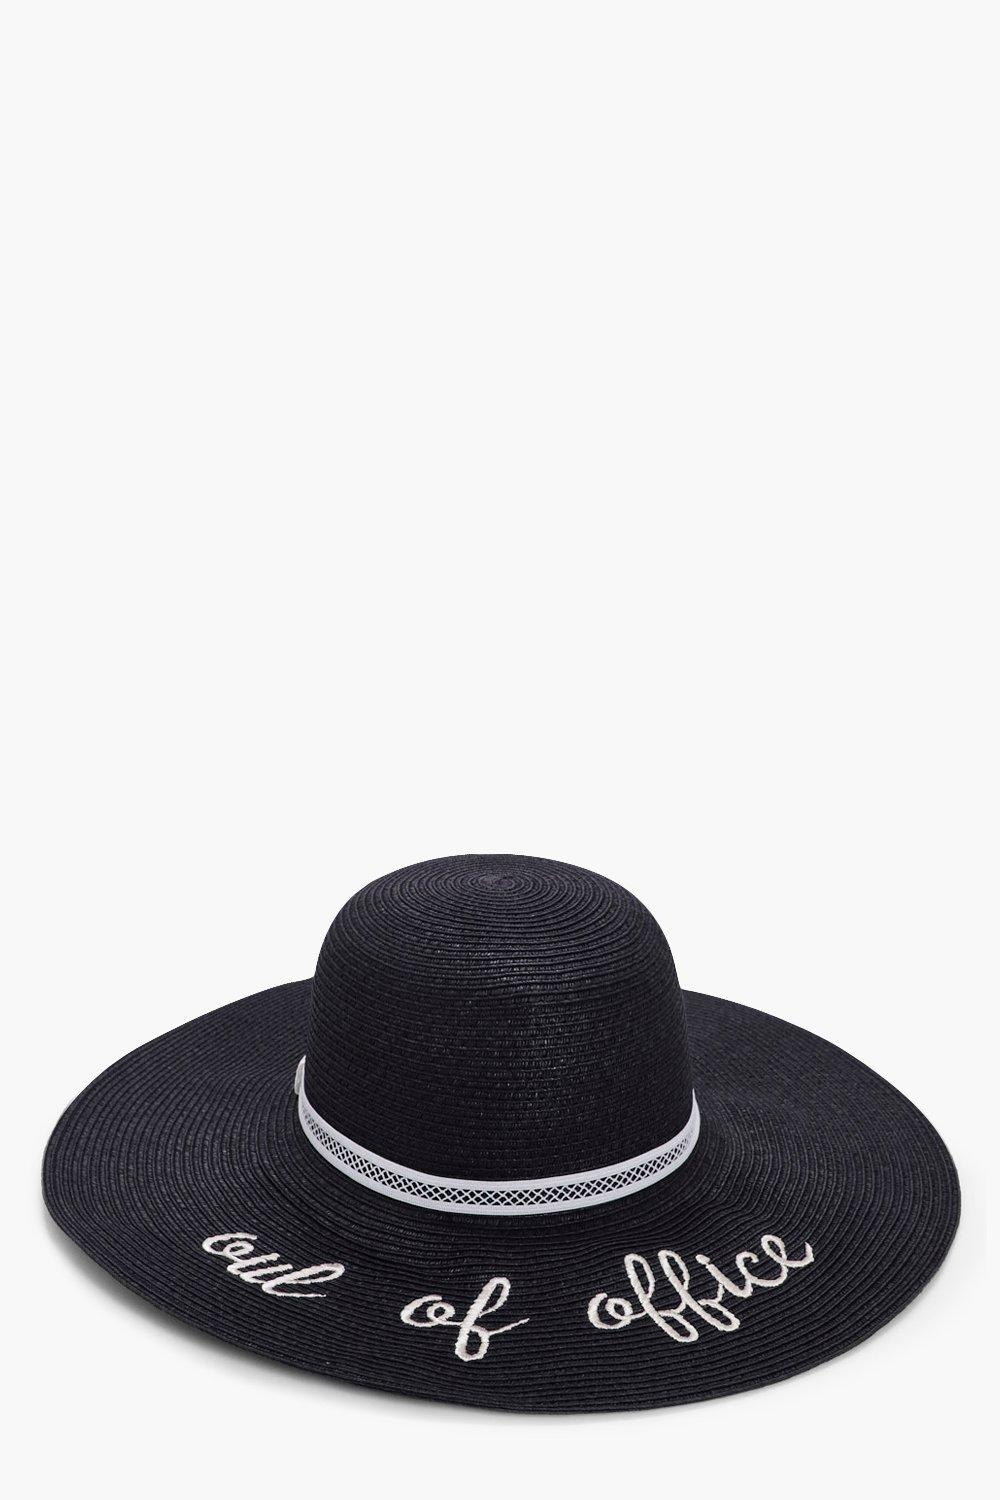 Out Of Office Straw Floppy Hat - black - Maya Out